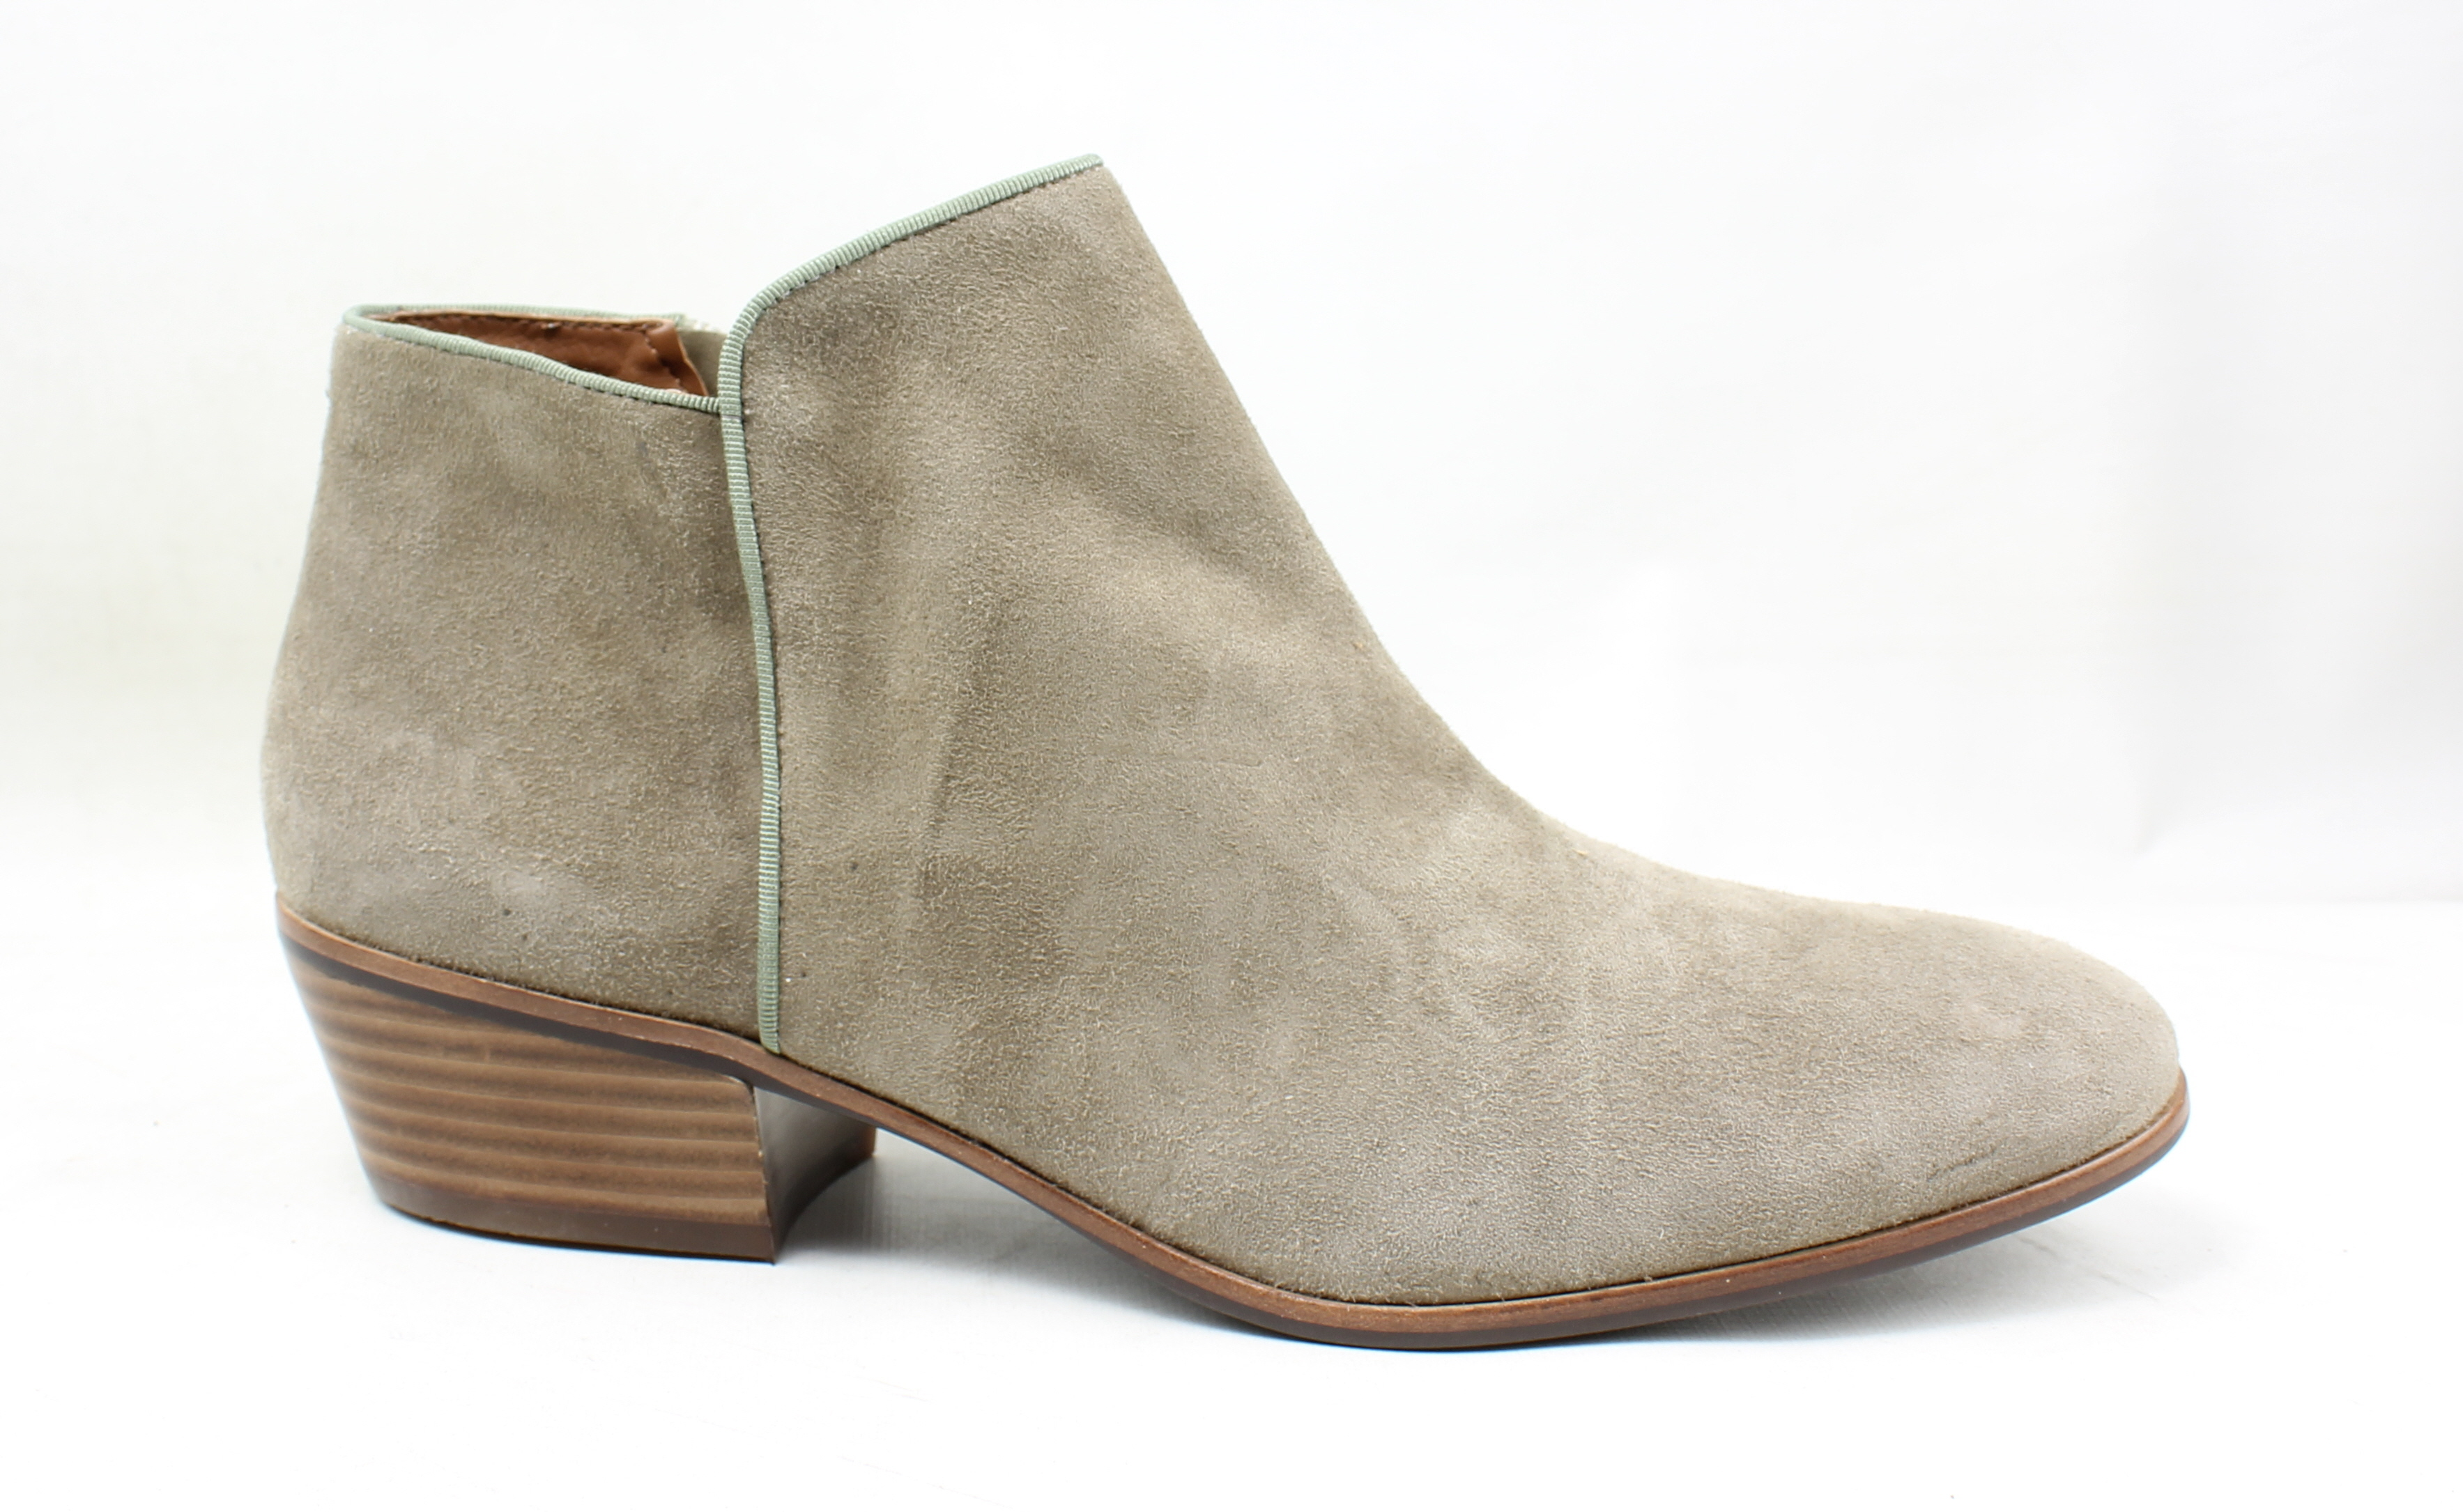 75c805d0db9db9 Sam Edelman Womens Petty Putty Suede Ankle Boots Size 10 (138412 ...